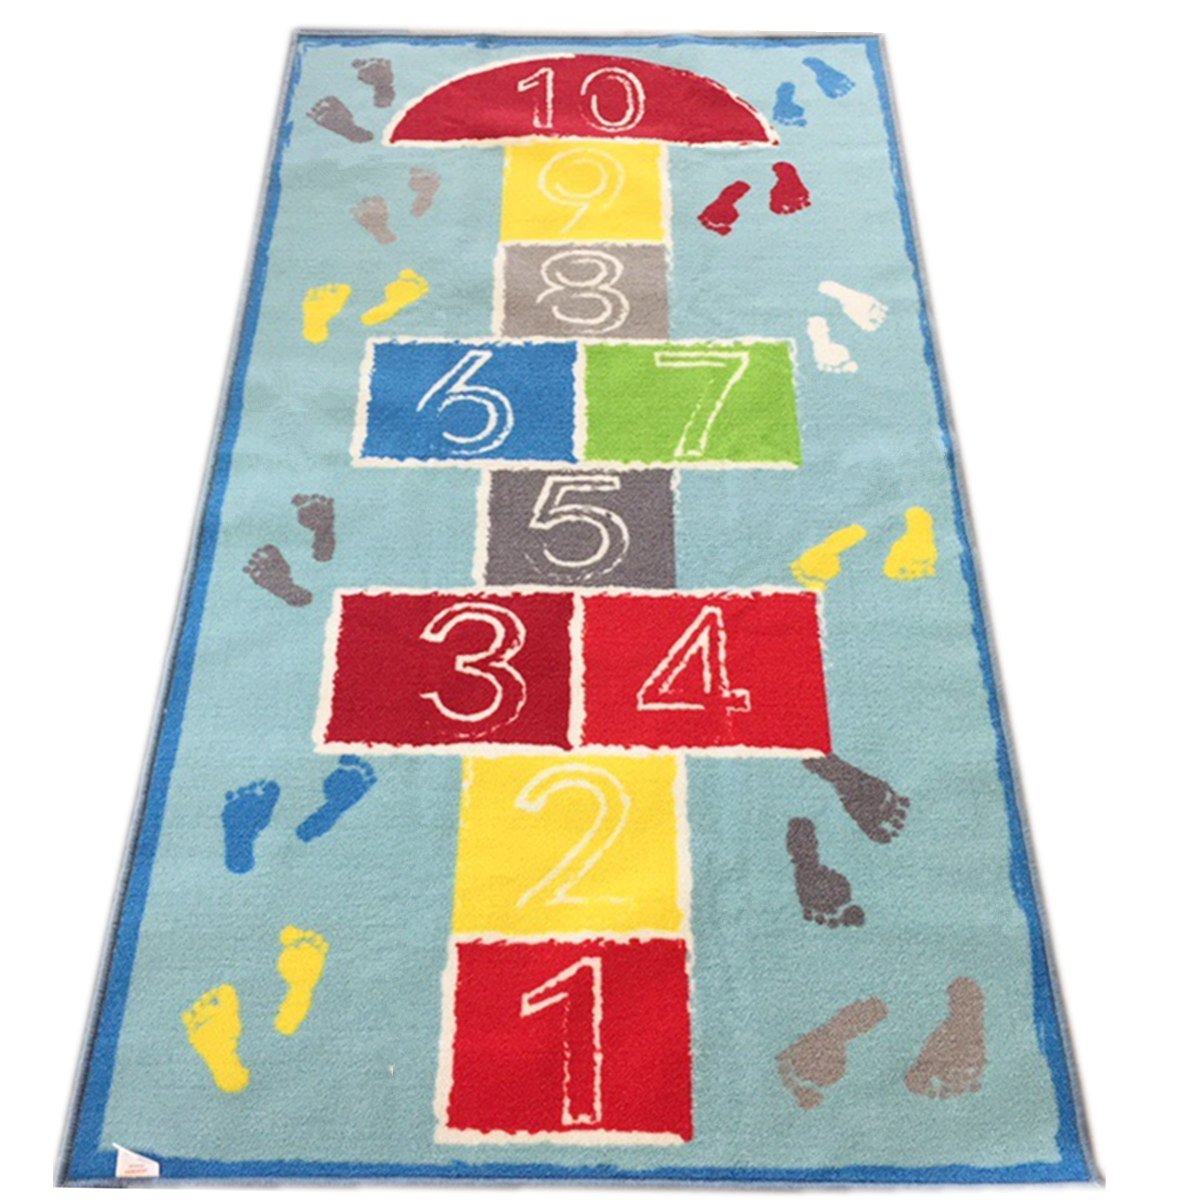 JACKSON Hopscotch Kid Rug for Playroom,Kid's Room,Nursery and Classroom,40''x71''Educational Area Rug for Boy and Girl,Safe and Fun Game Rug with Non-Slip Backing(Hopscotch Kid Rug)